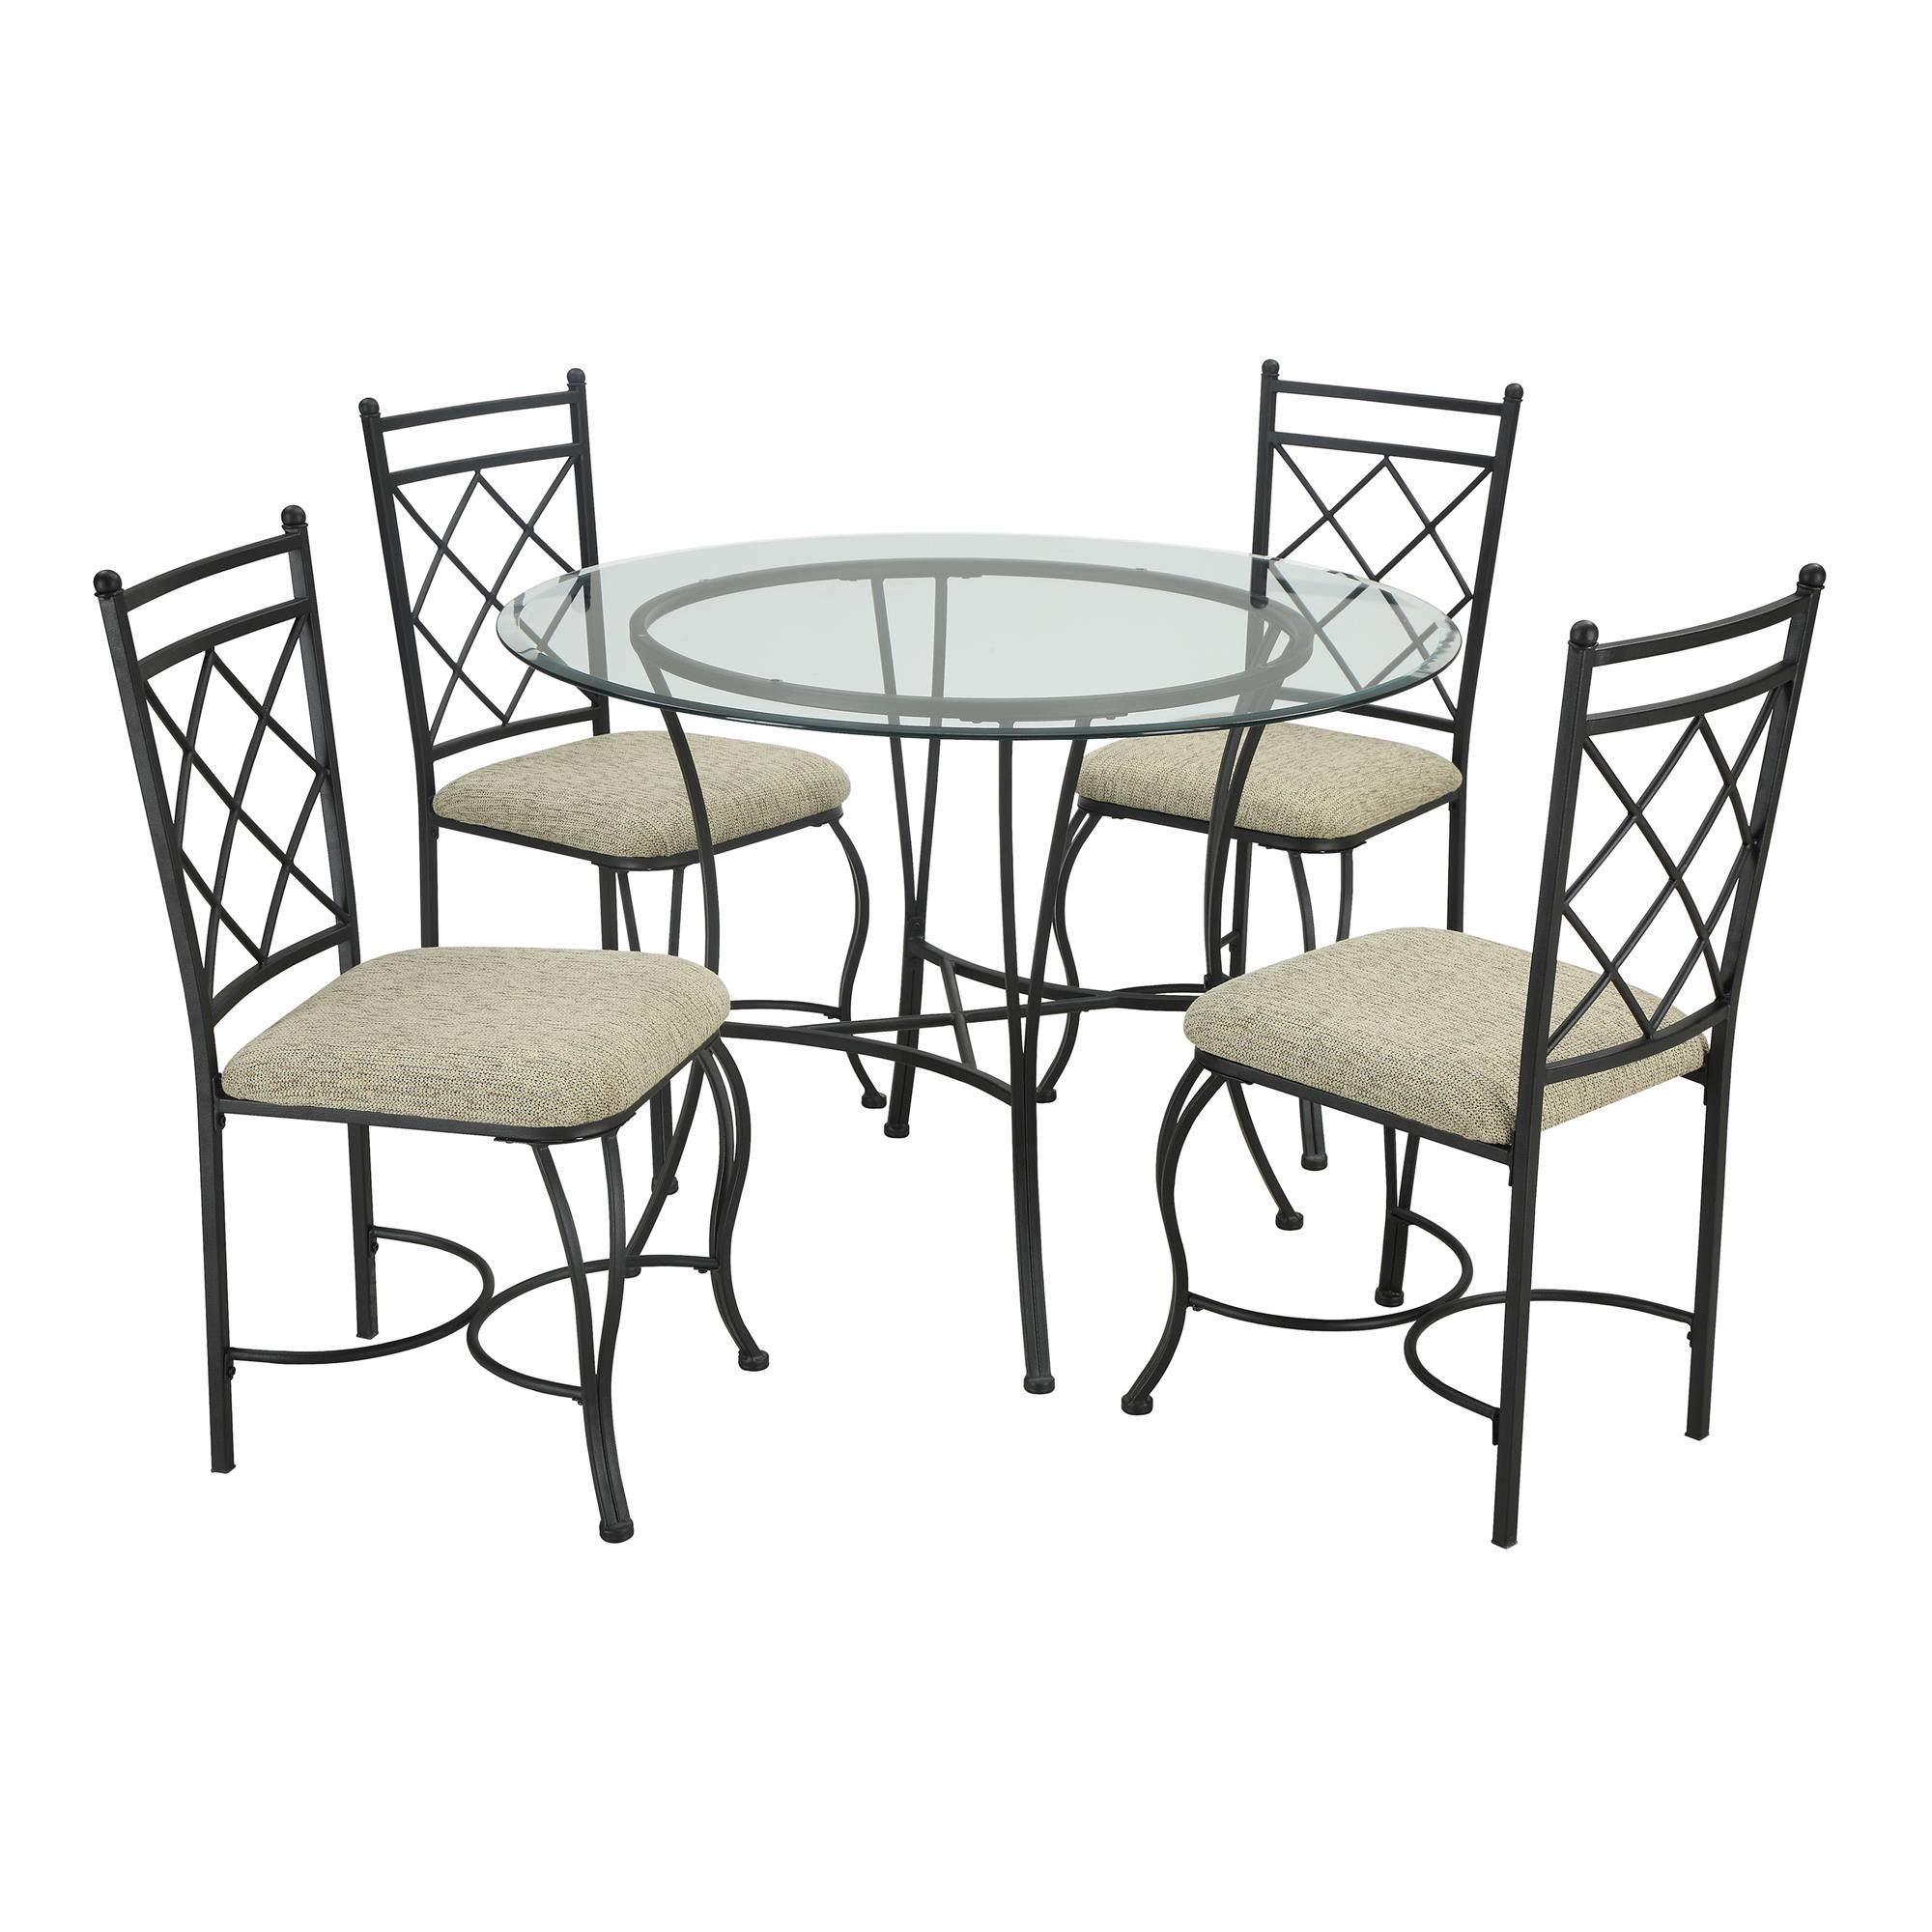 Exceptional Mainstays 5 Piece Glass Top Metal Dining Set